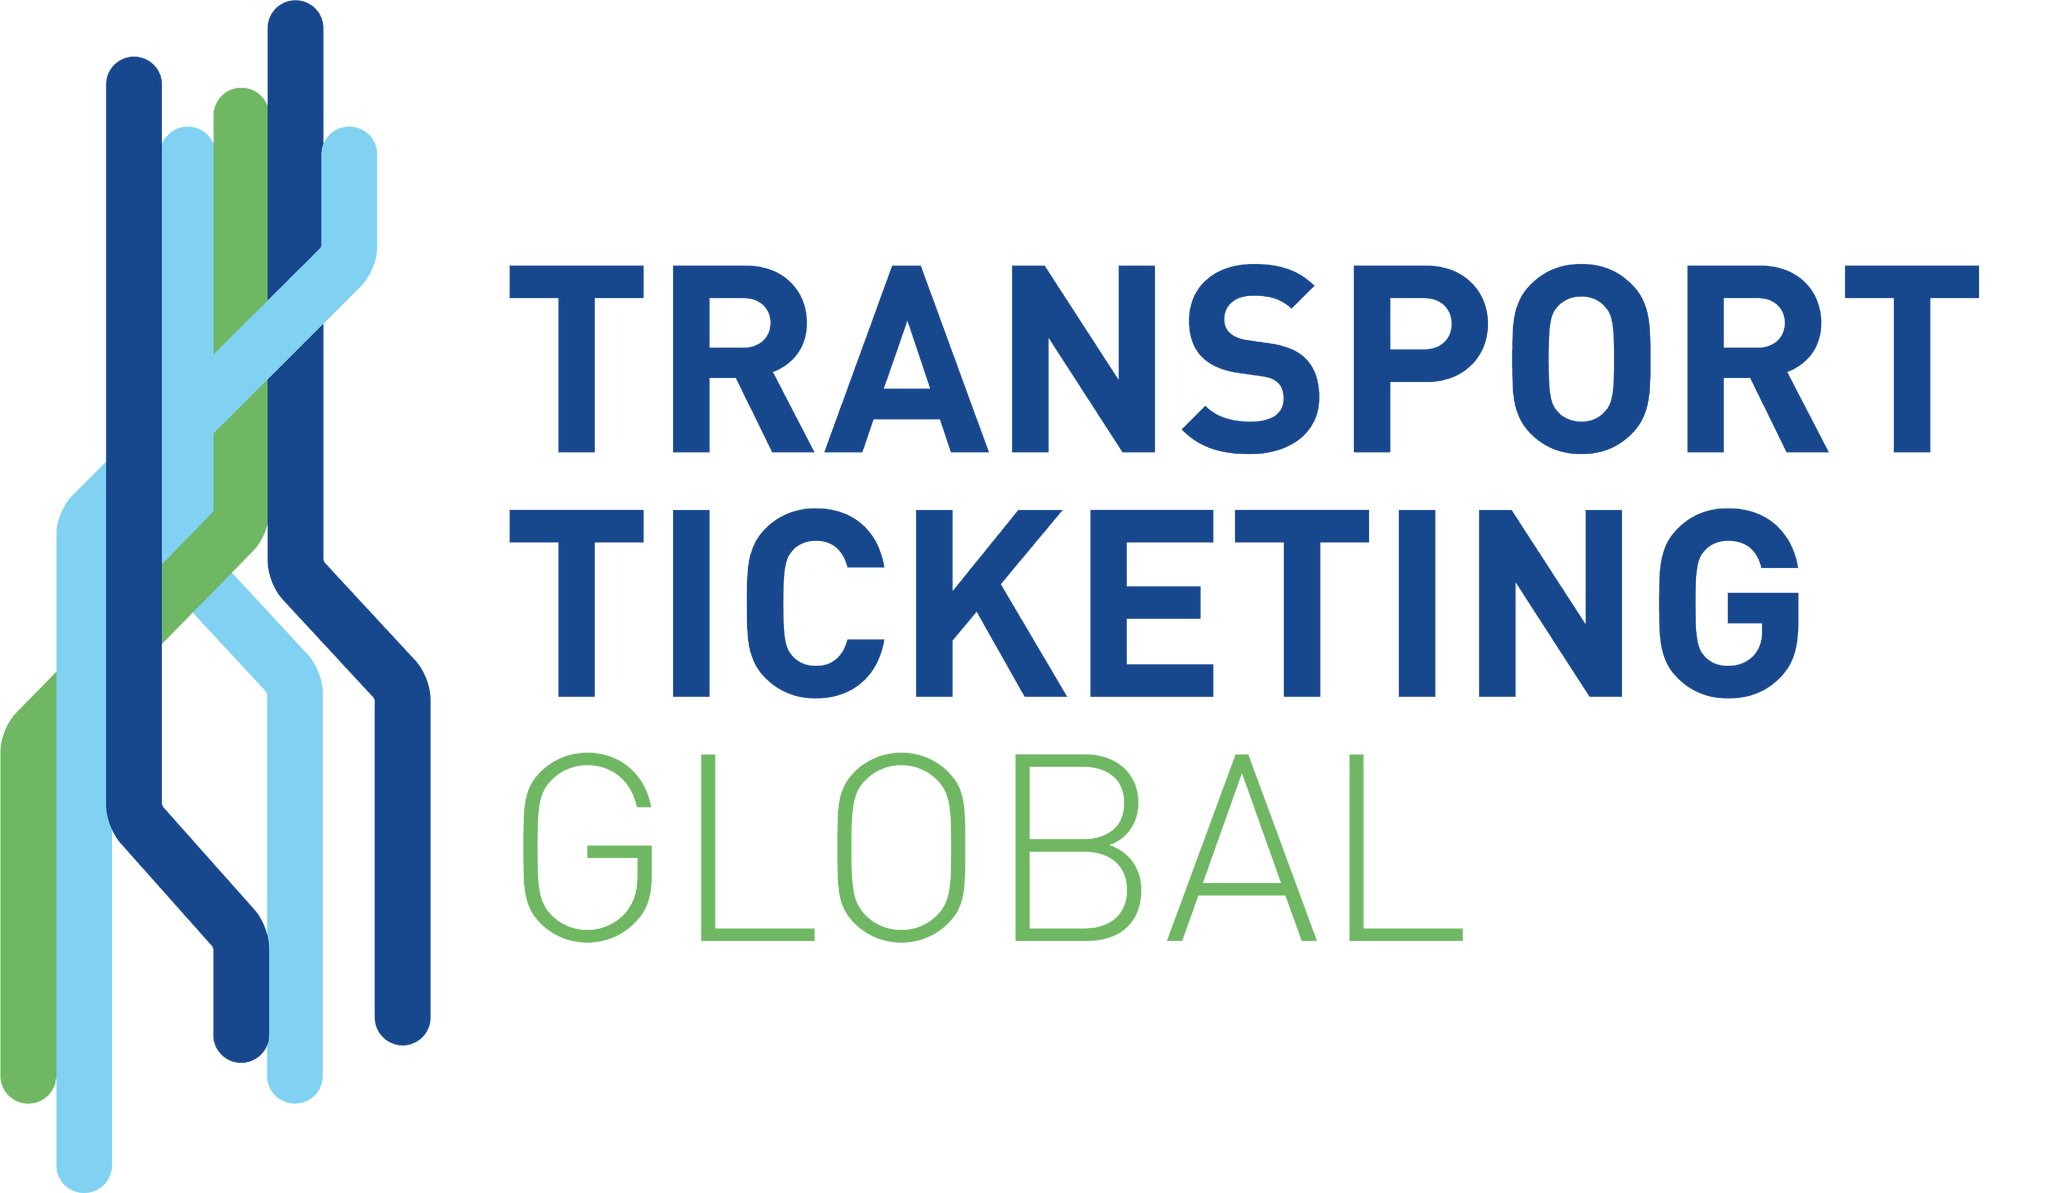 transport-ticketing-globalpng